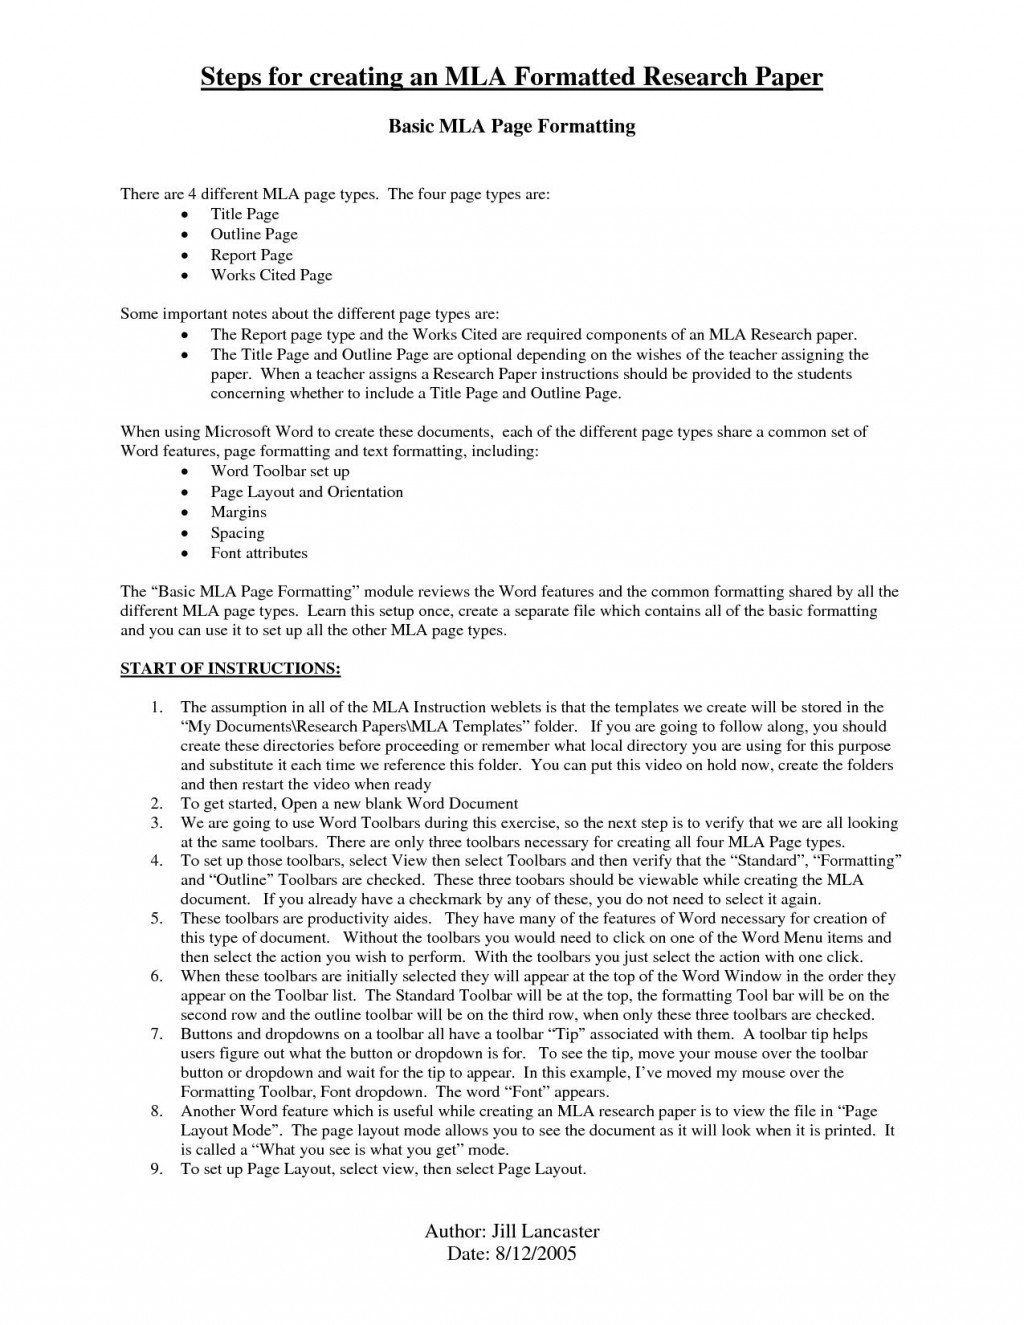 016 How Do You Cite An Essay Example Mla Format Citation Scarlet Letter Best Works Cited Fresh Exceptional Wikipedia In Text To A Book Harvard Large